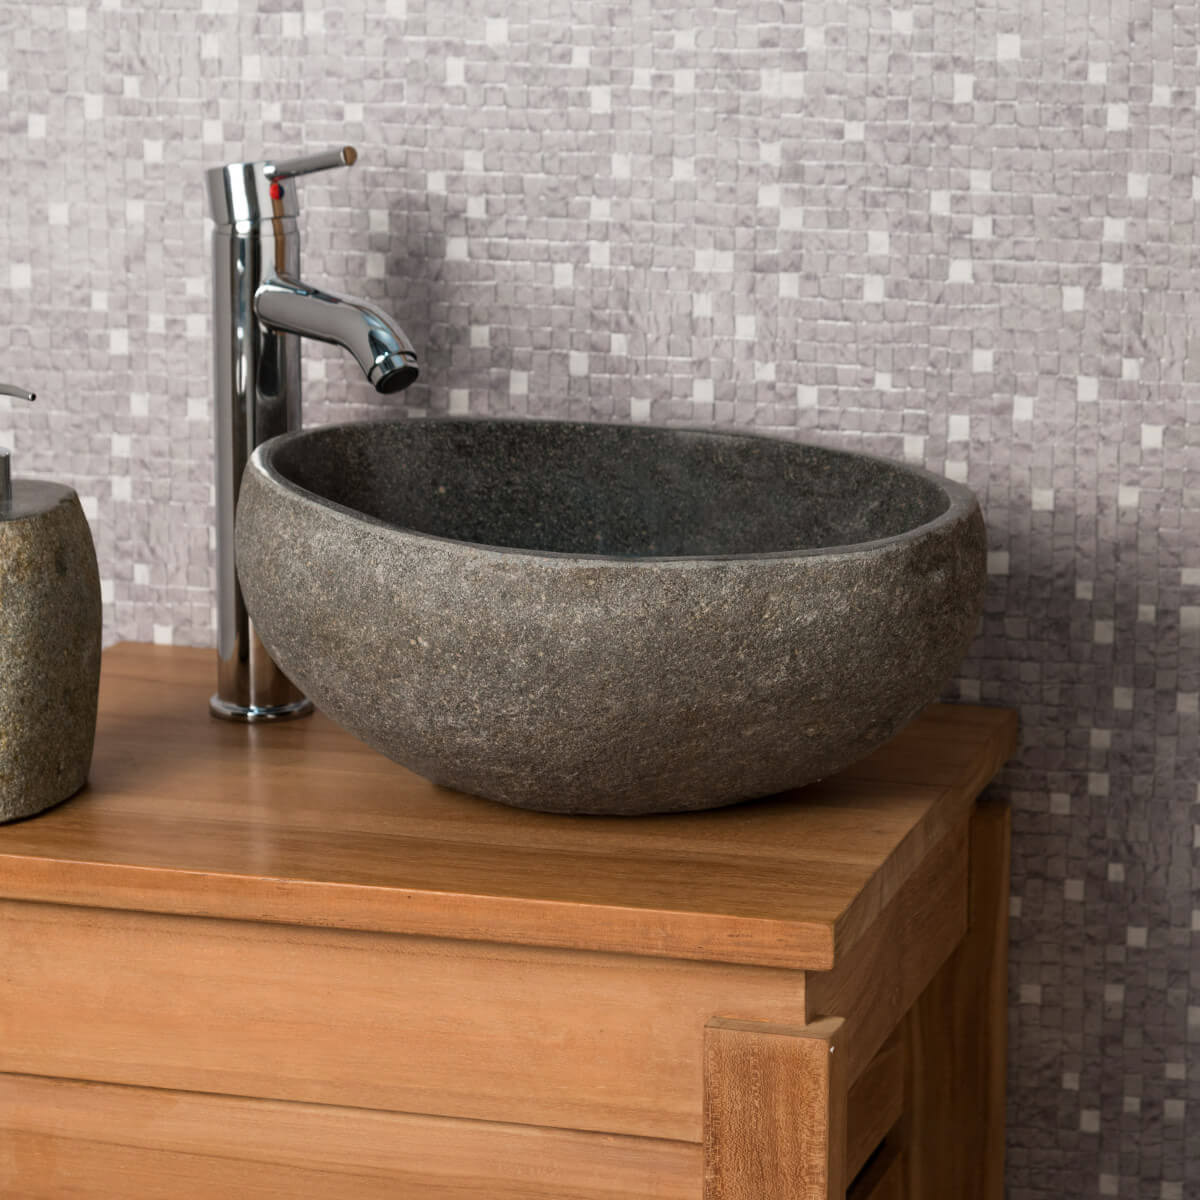 vasque en pierre salle de bain vasque sur pied carre en marbre gris salle de bain lavabo pierre. Black Bedroom Furniture Sets. Home Design Ideas